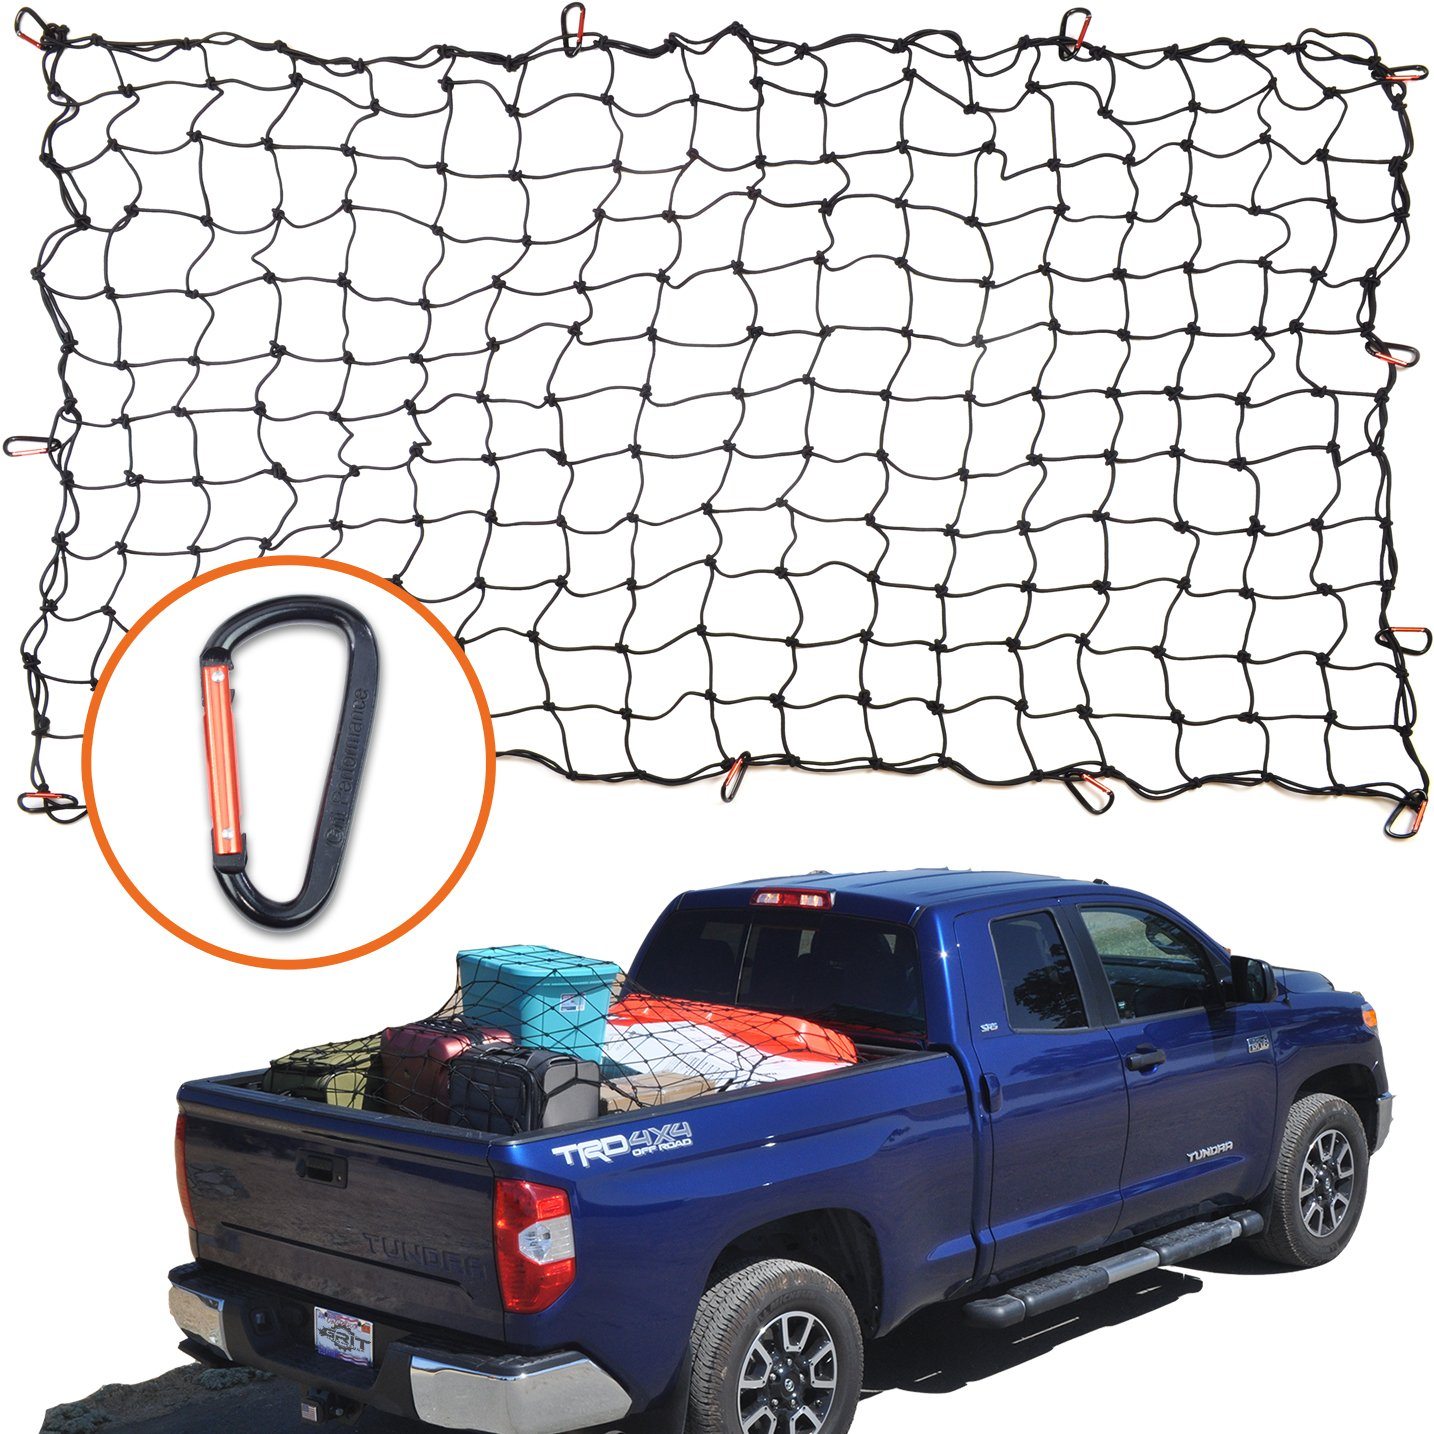 4'x6' Super Duty Bungee Cargo Net for Truck Bed Stretches to 8'x12' | 12 Tangle-Free D Clip Carabiners | Small 4''x4'' Mesh Holds Small and Large Loads Tighter